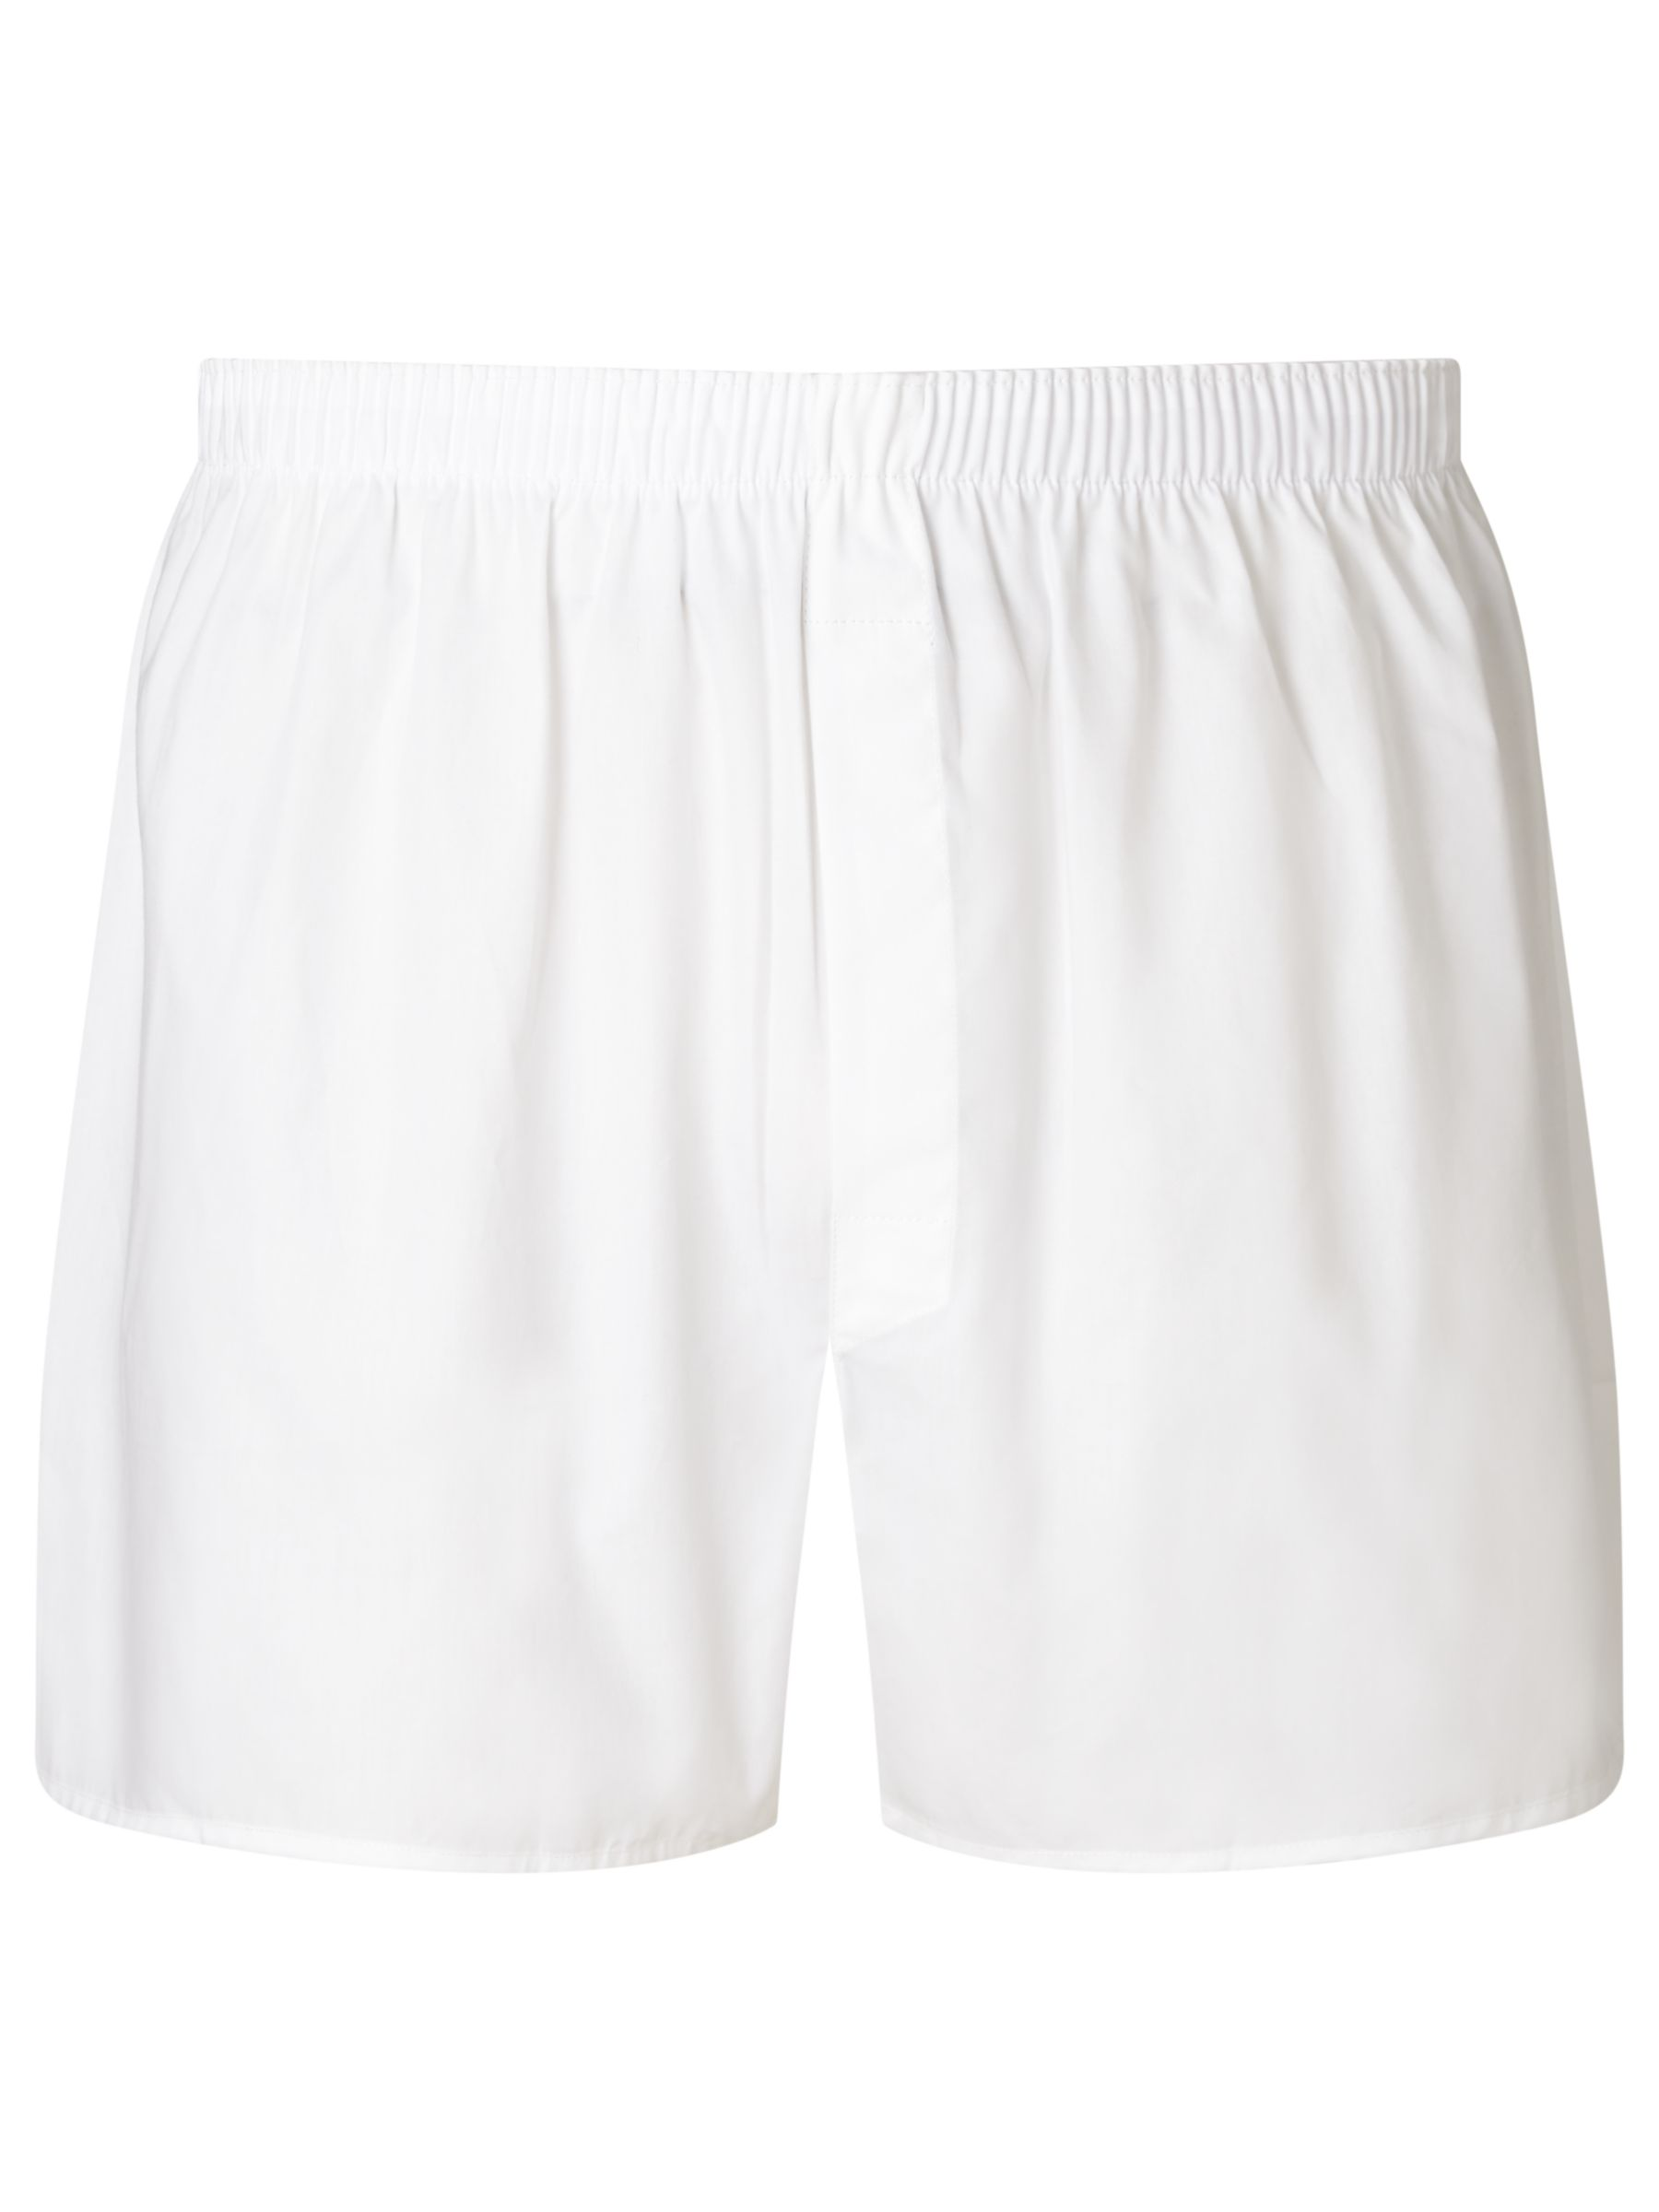 Sunspel Sunspel Classic Cotton Boxer Shorts, White